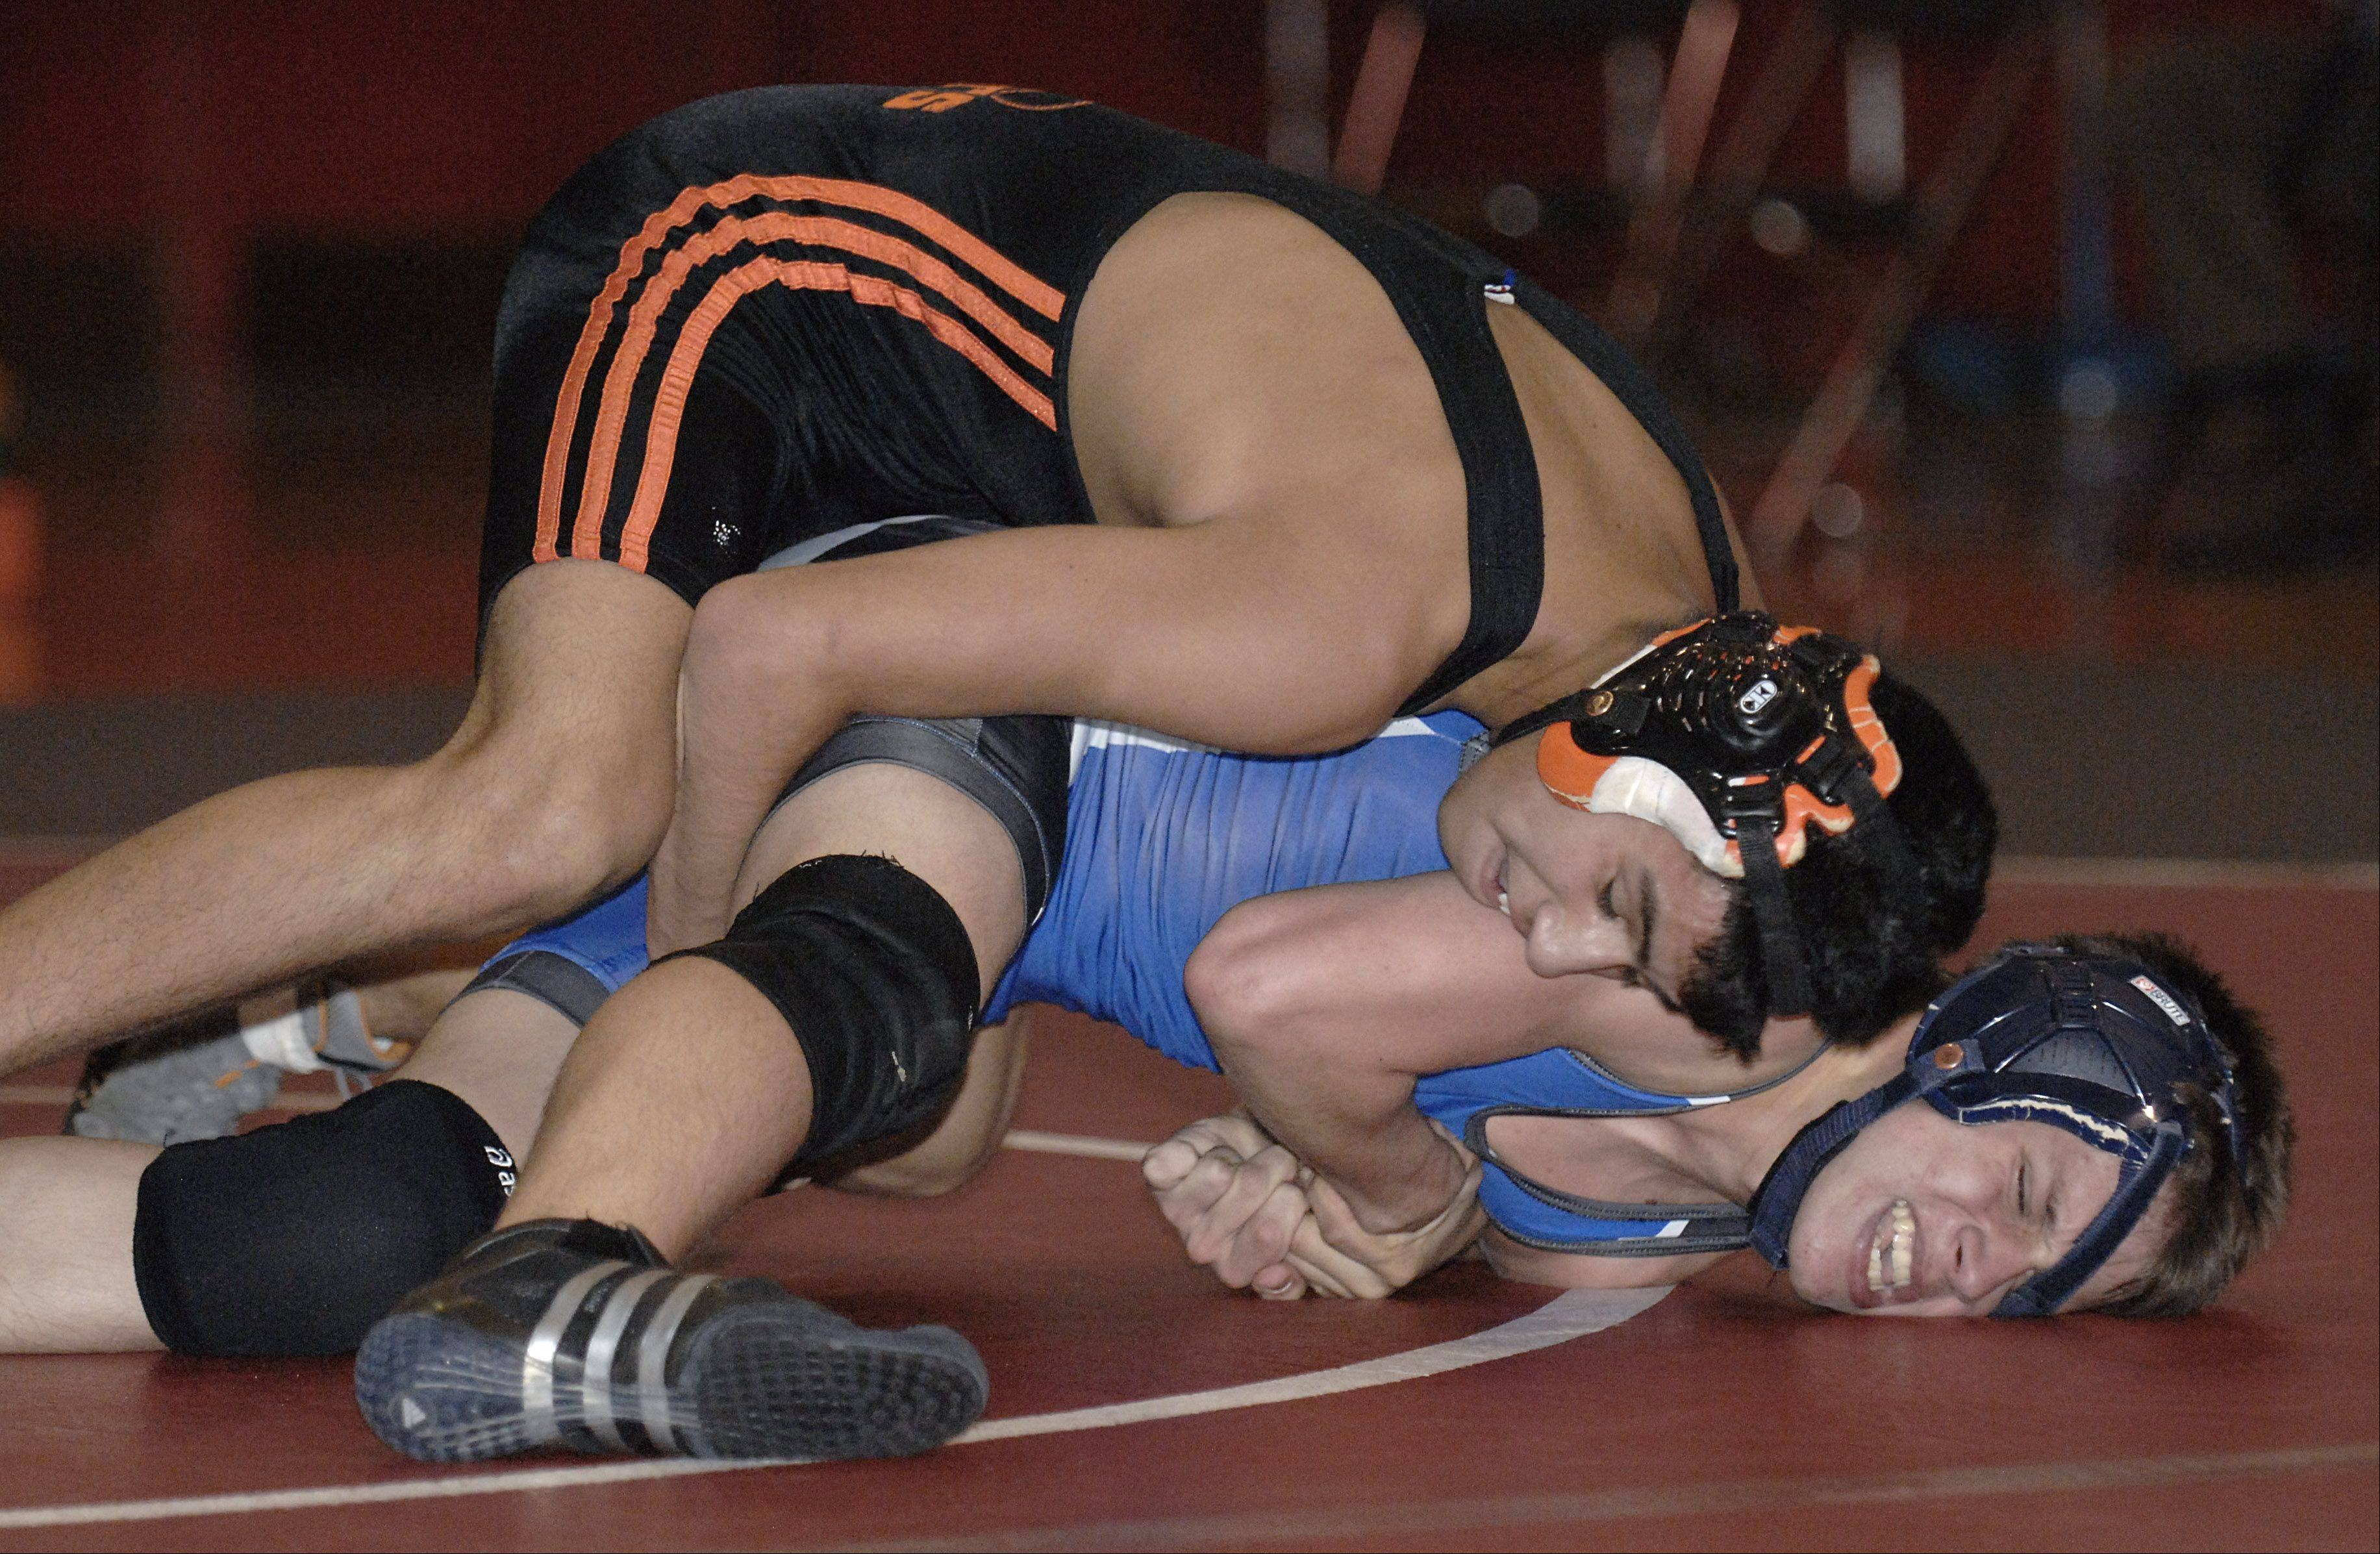 Laura Stoecker/lstoecker@dailyherald.com � St. Charles East's Isaiah Vela takes the 125 match over St. Charles North's Mike Sherry on Wednesday, November 23.